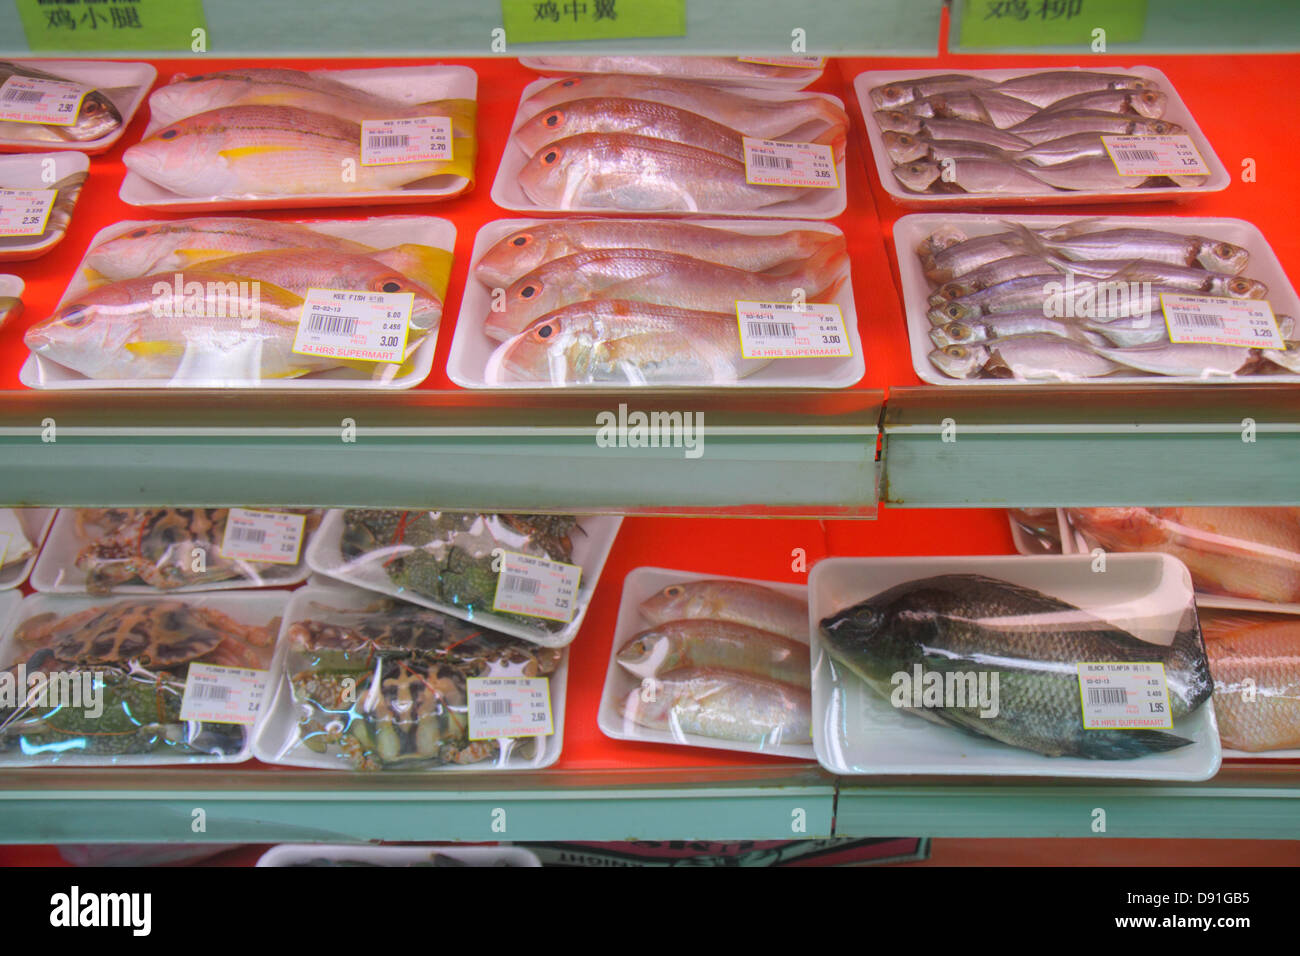 Singapore Jalan Besar convenience store seafood fish crabs for sale packaged - Stock Image